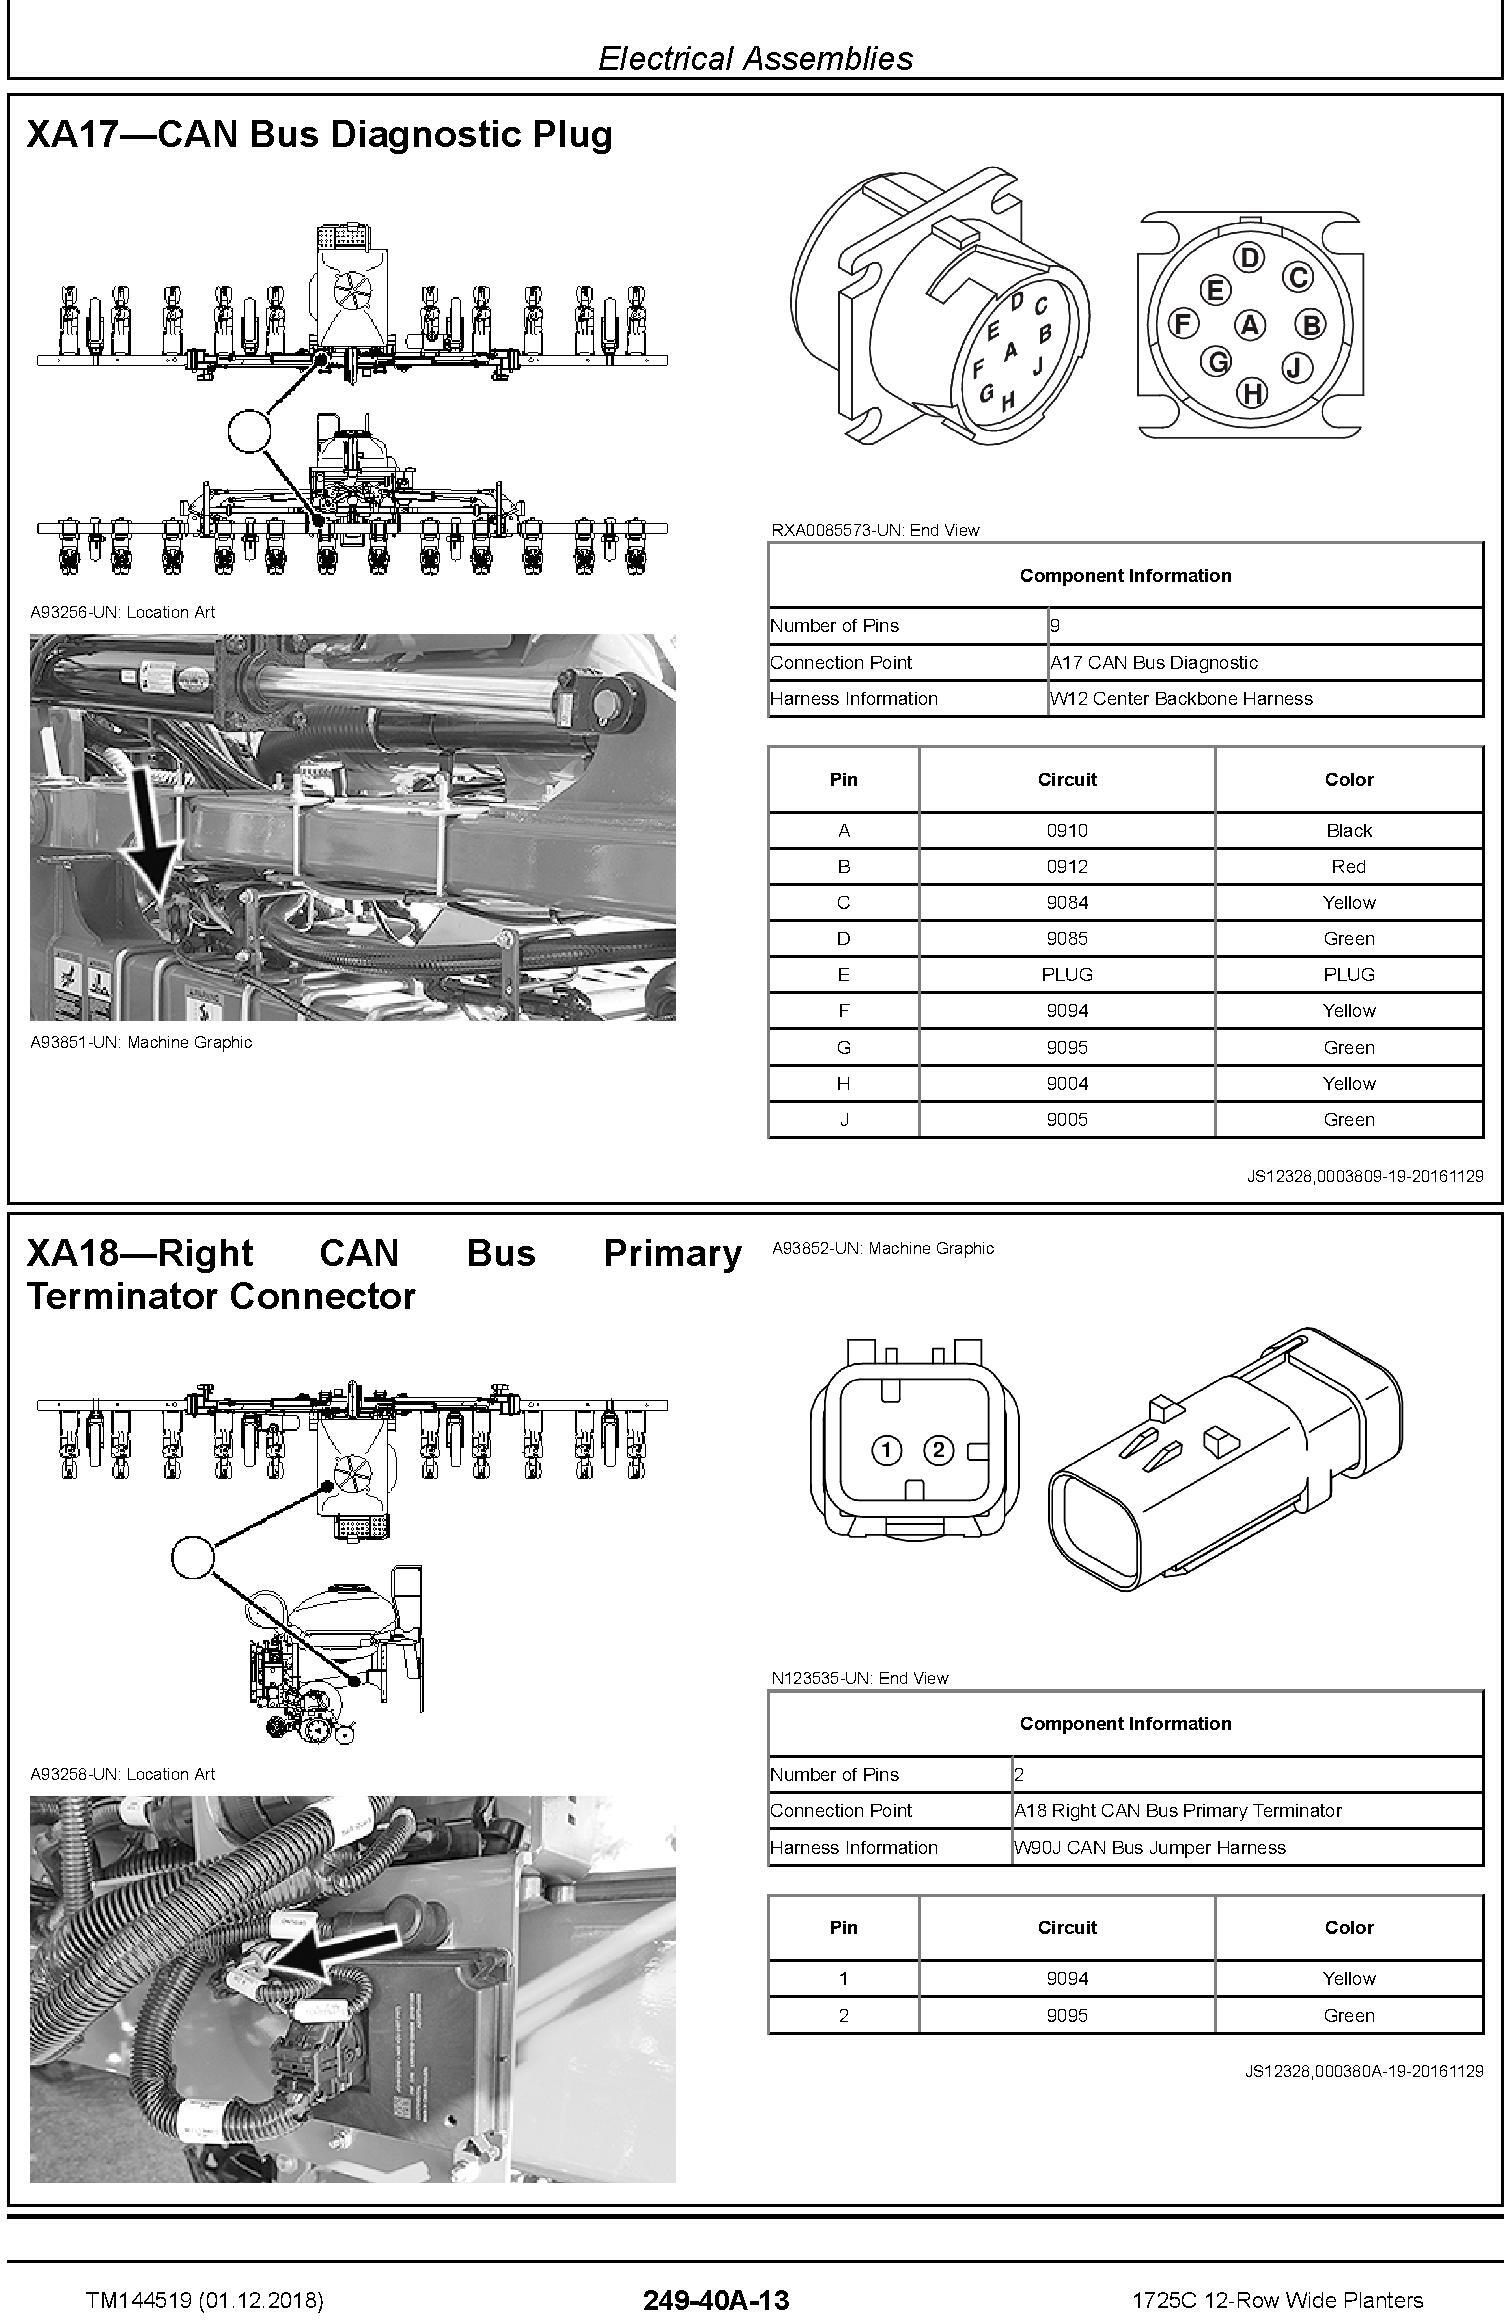 John Deere 1725C 12-Row Wide Planters Diagnostic Technical Service Manual (TM144519) - 1